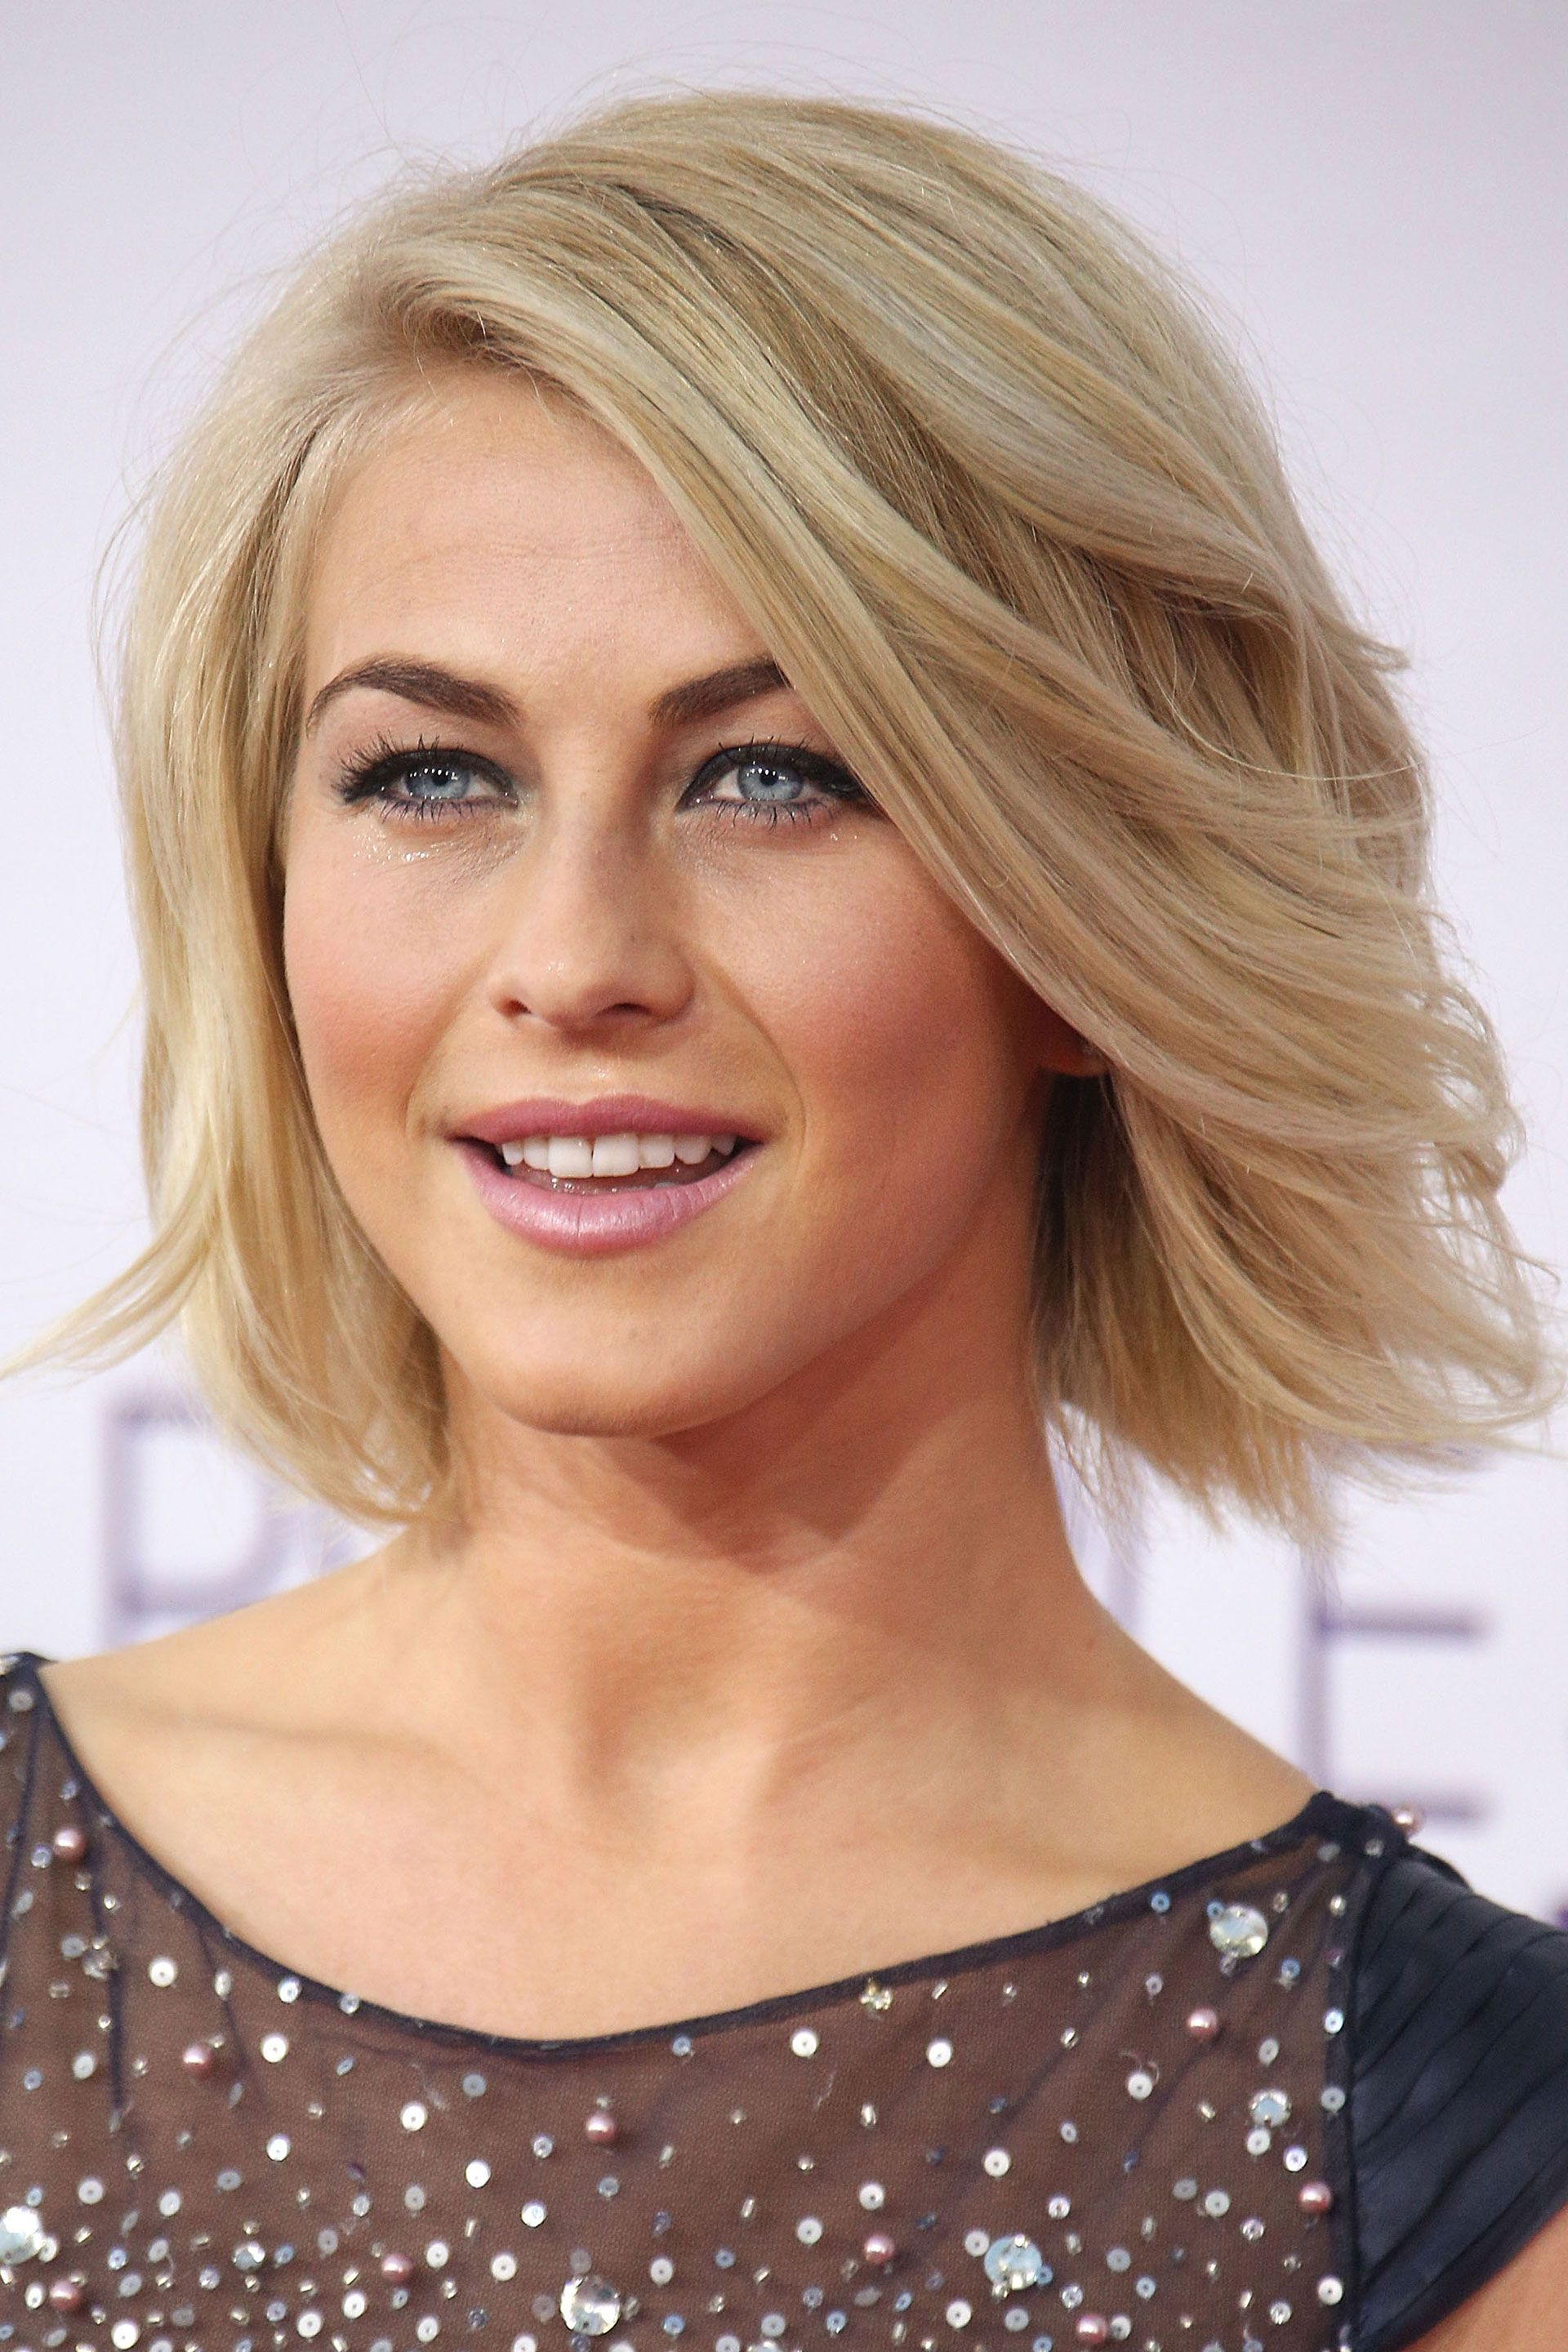 50 Knockout Date-Night Hairstyles | Night hairstyles